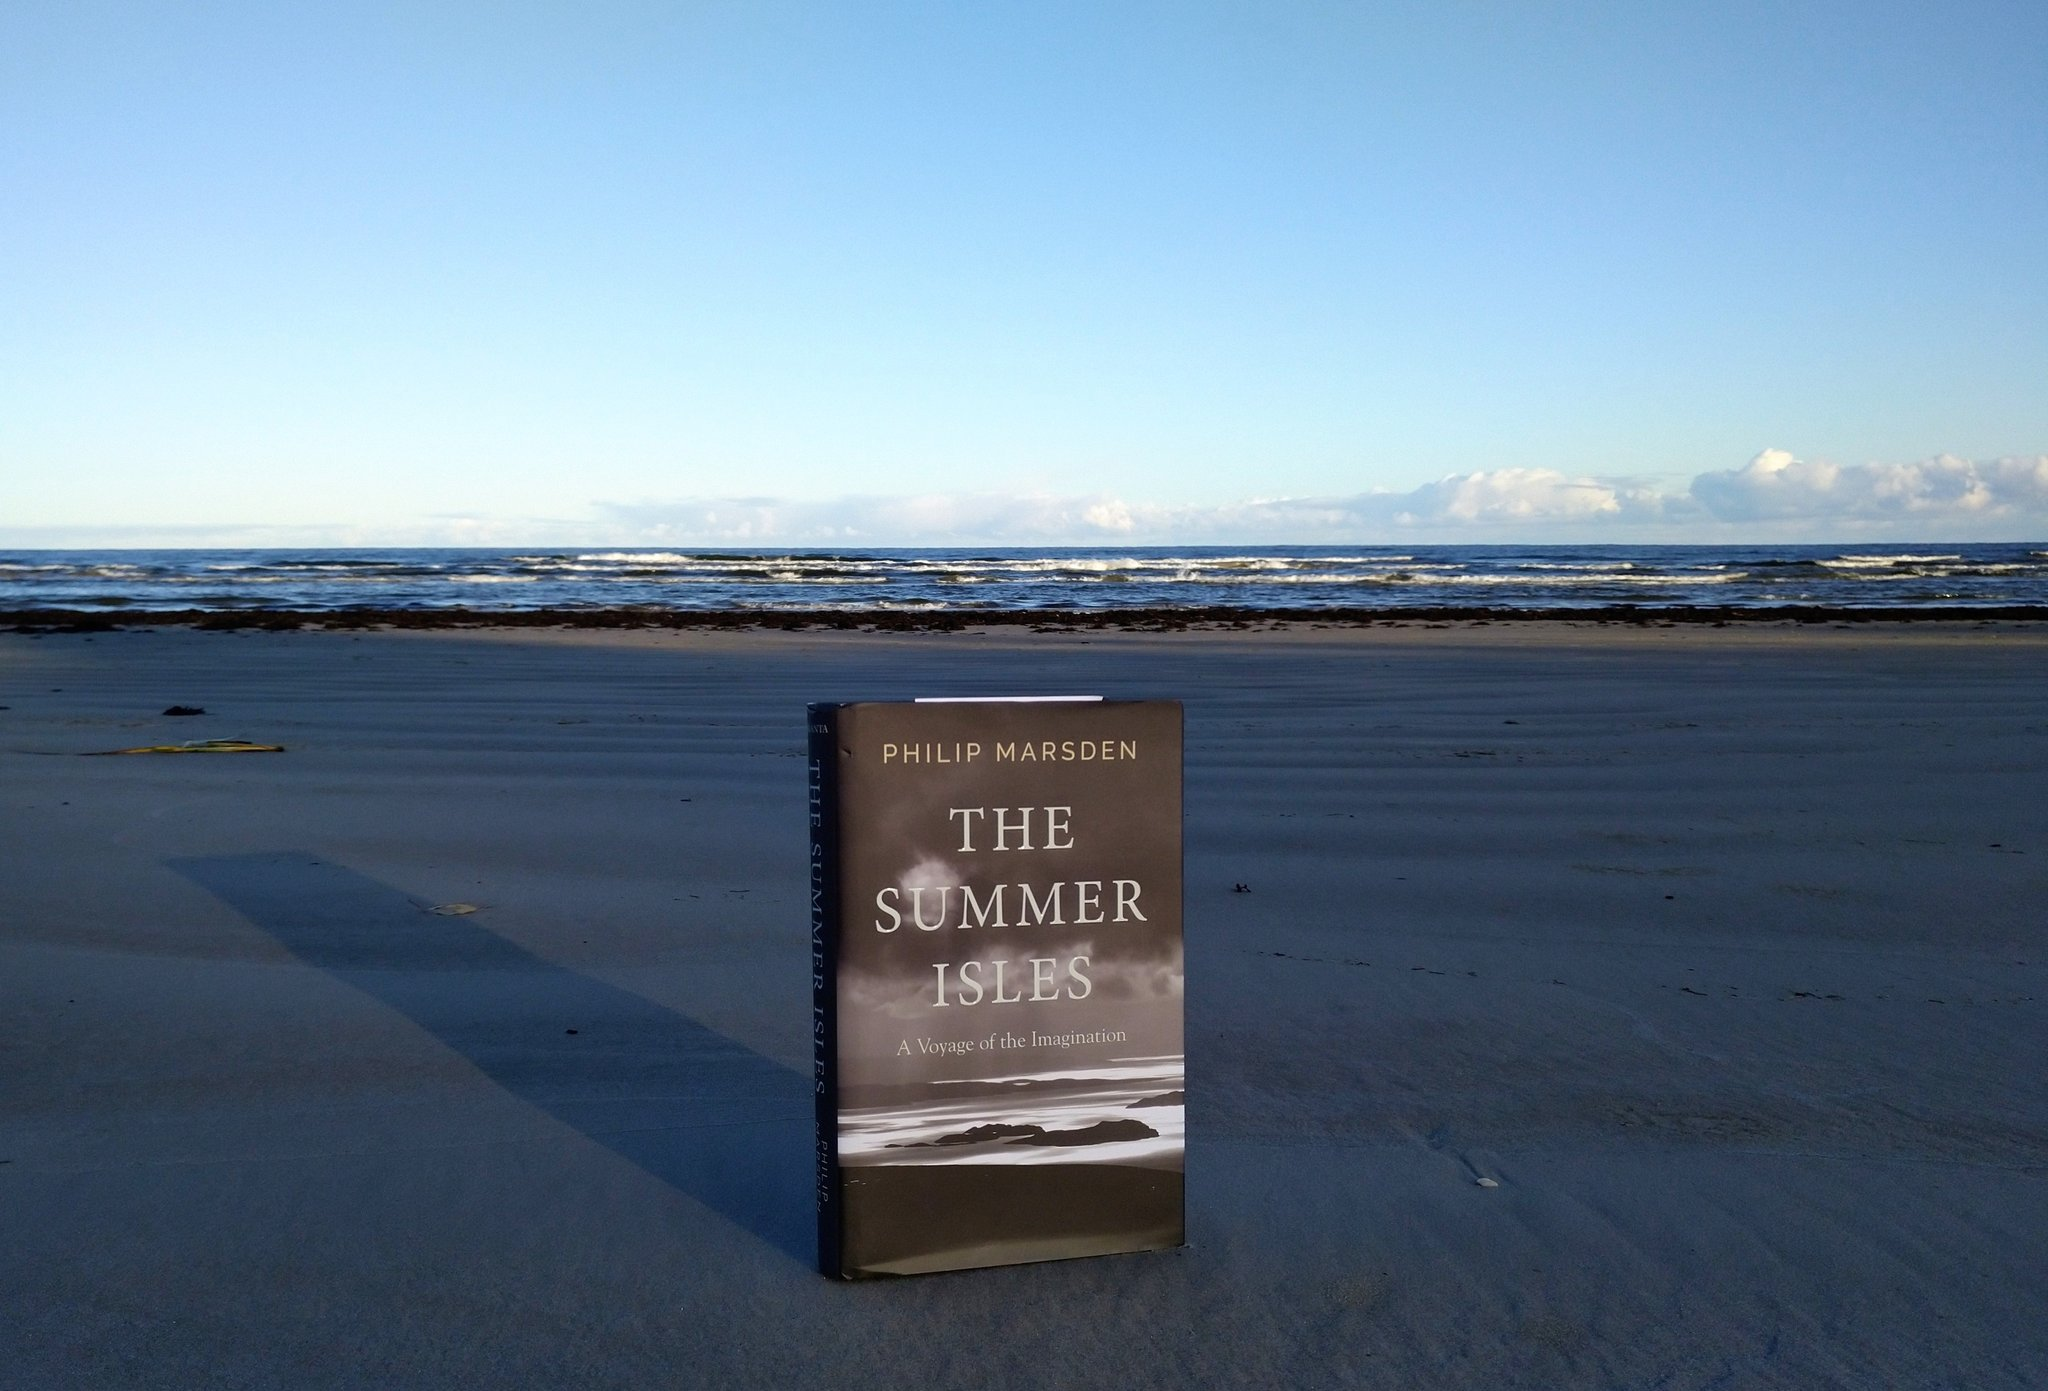 The Summer Isles: A Voyage of the Imagination by Philip Marsden is published in 2019 by Granta. Photo by Beach Books.